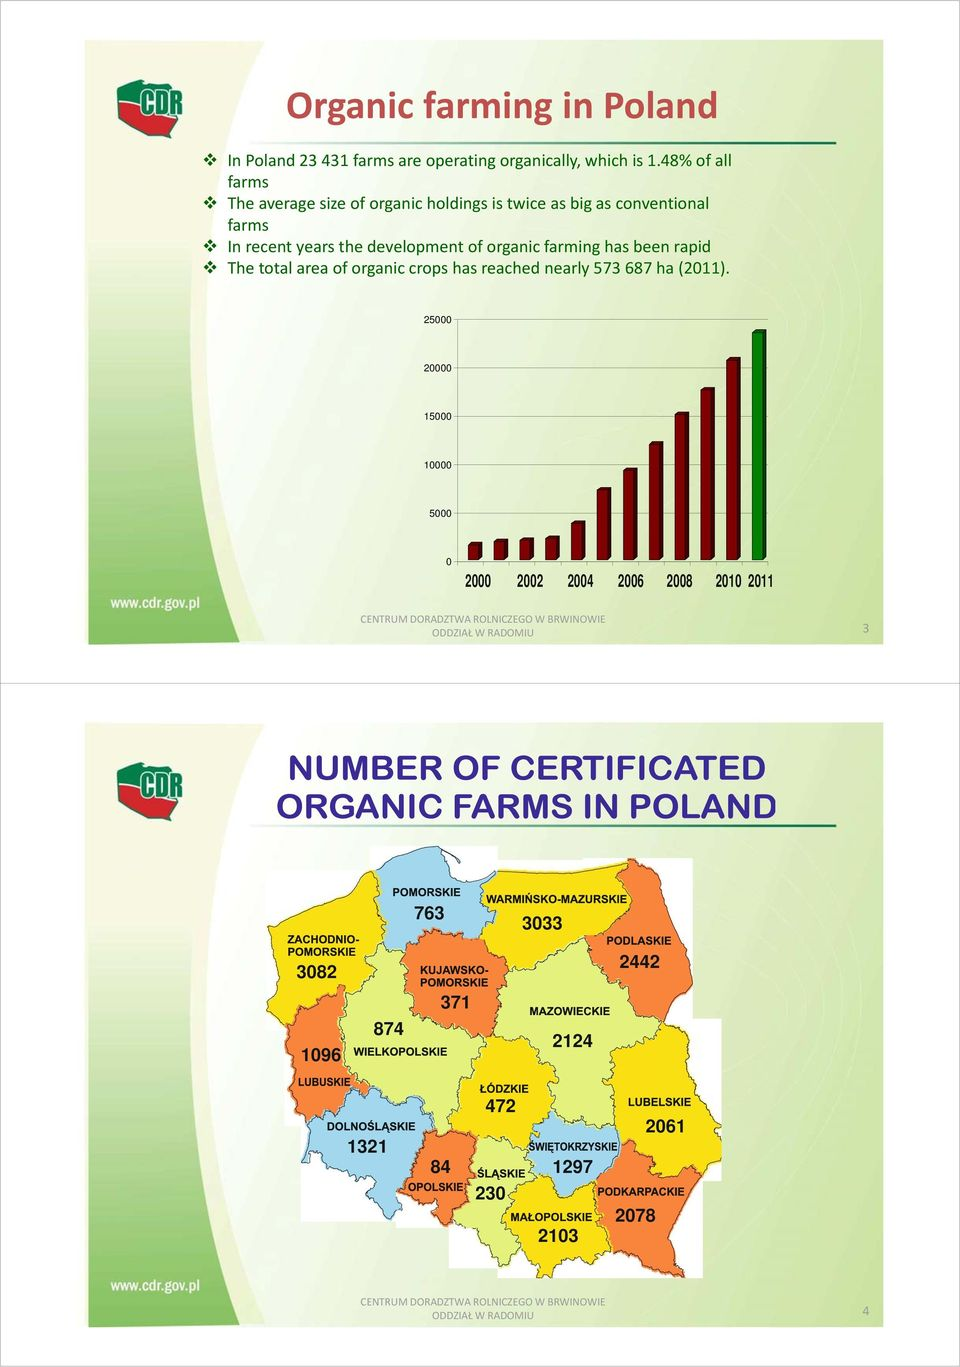 of organic farming has been rapid The total area of organic crops has reached nearly 573 687 ha (2011).